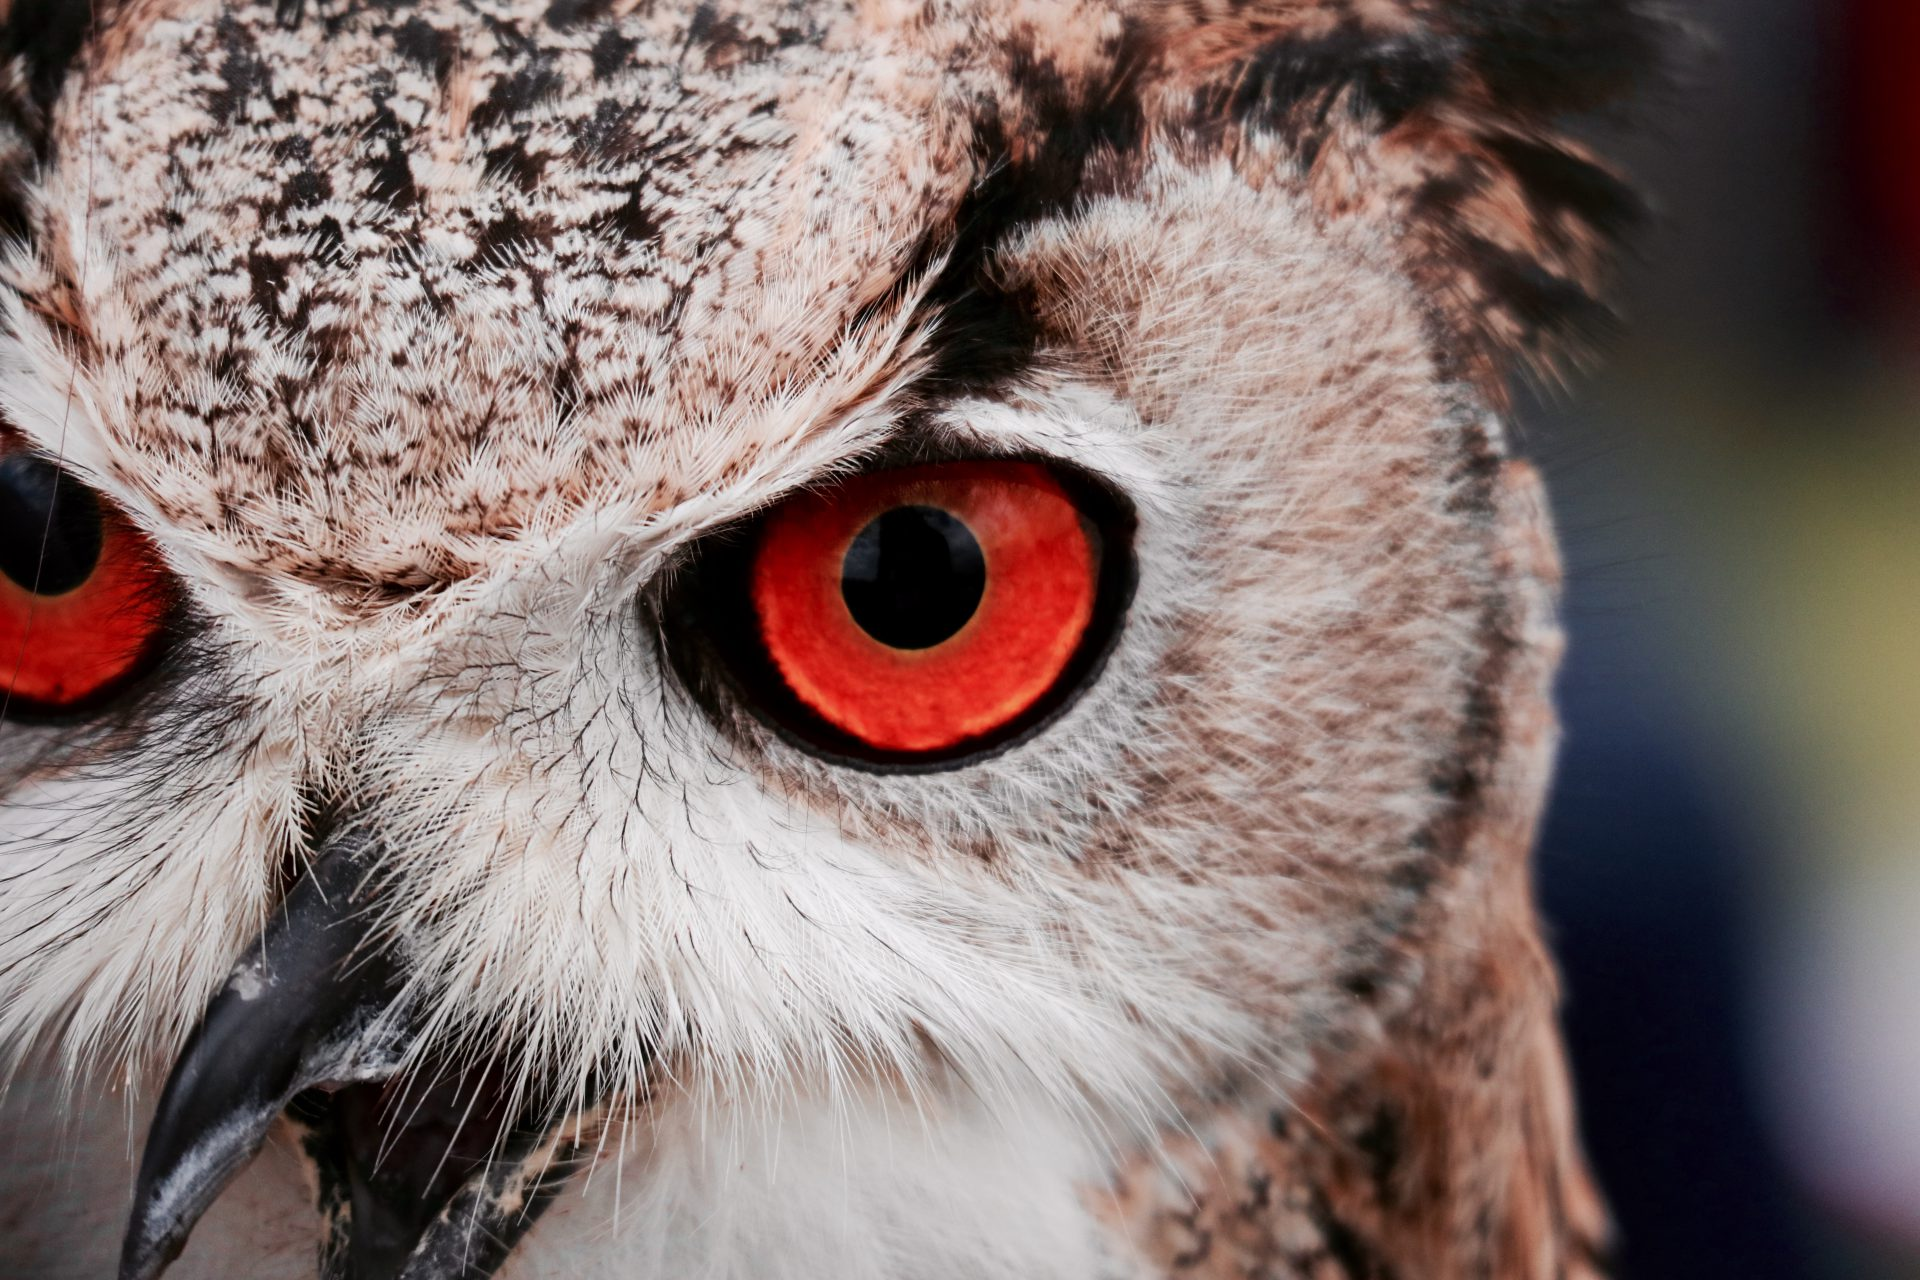 Owl with red eye